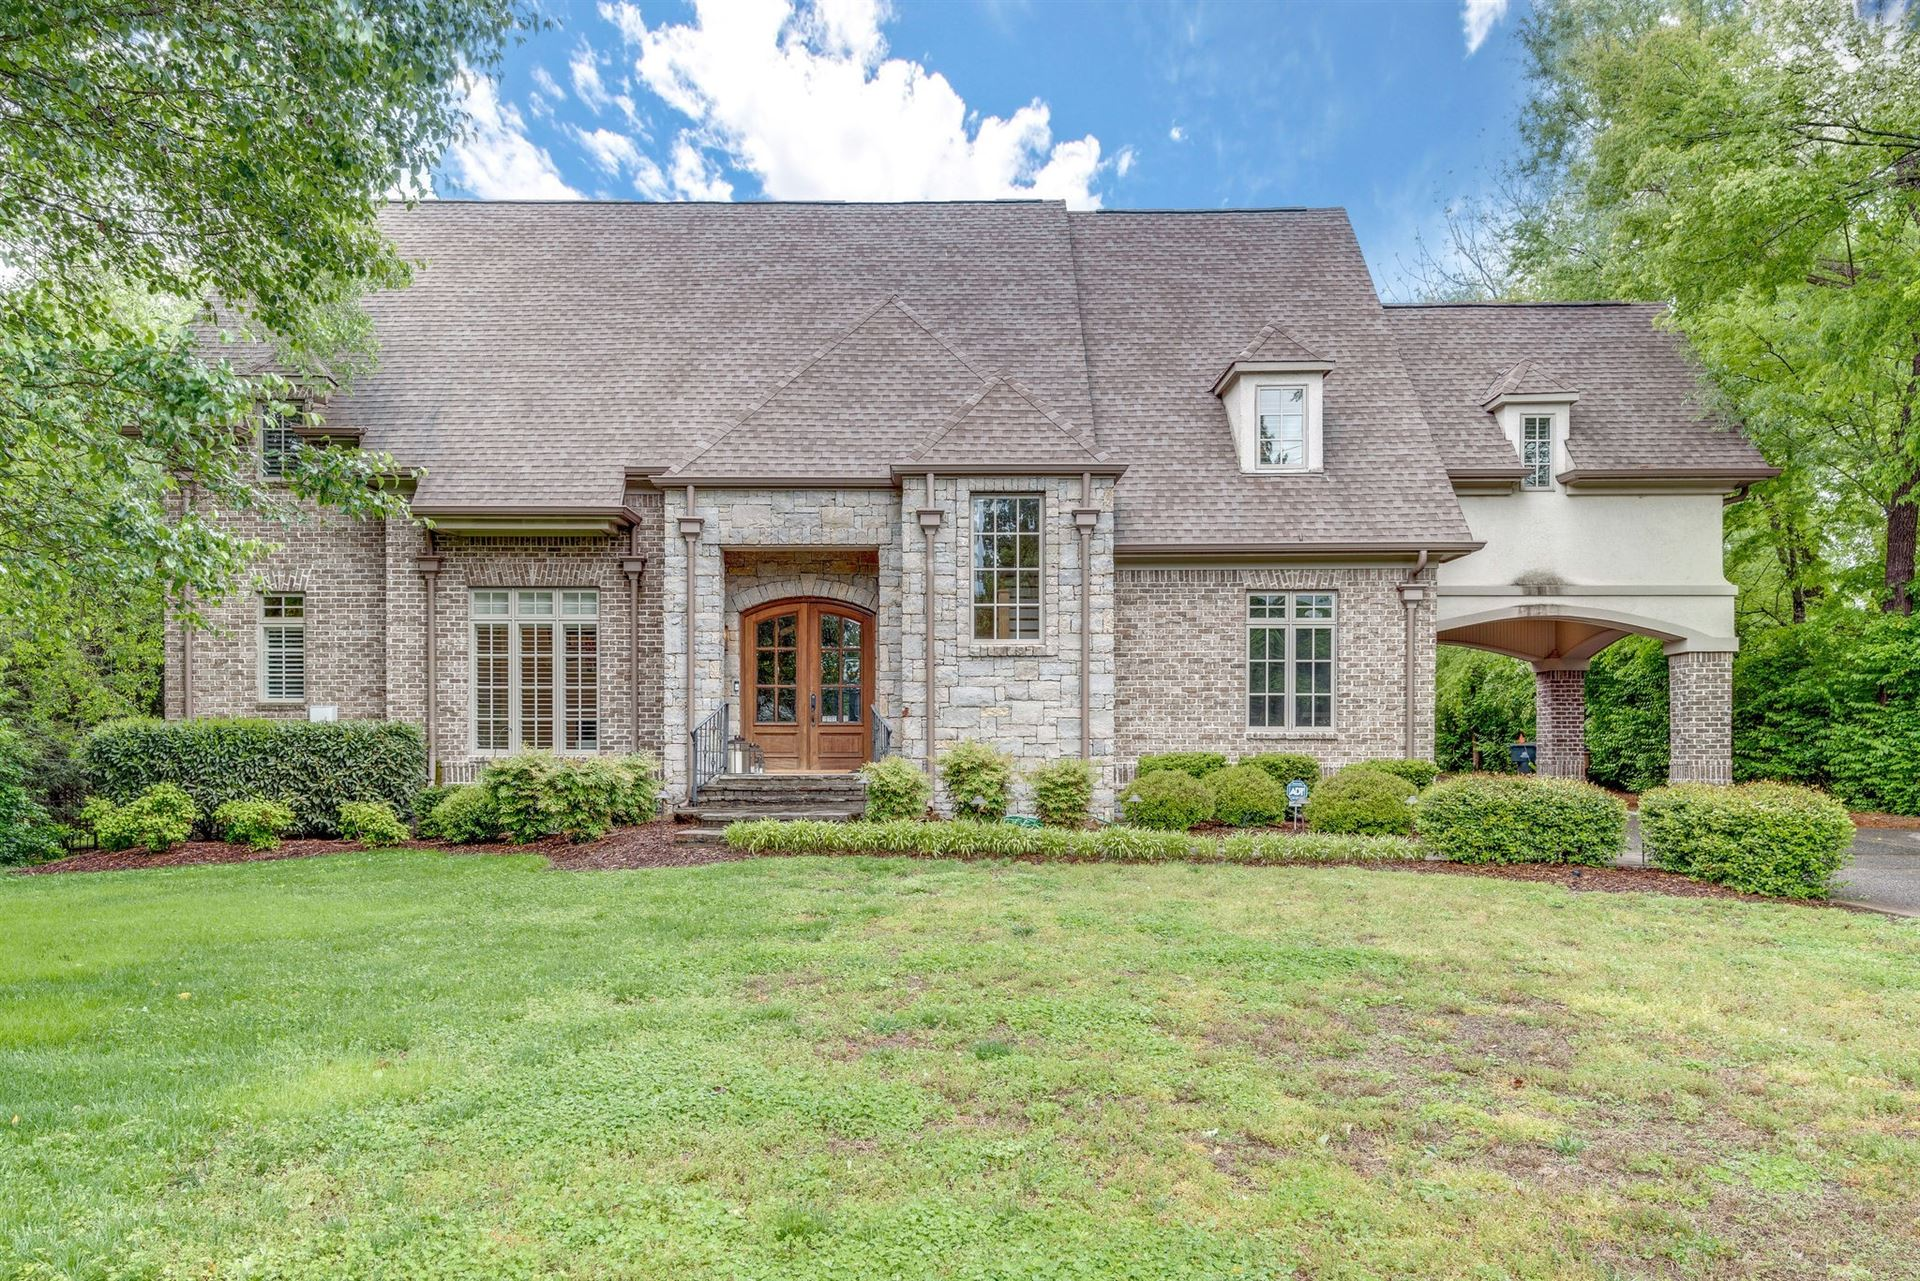 Photo of 3919 Vailwood Dr, Nashville, TN 37215 (MLS # 2201214)